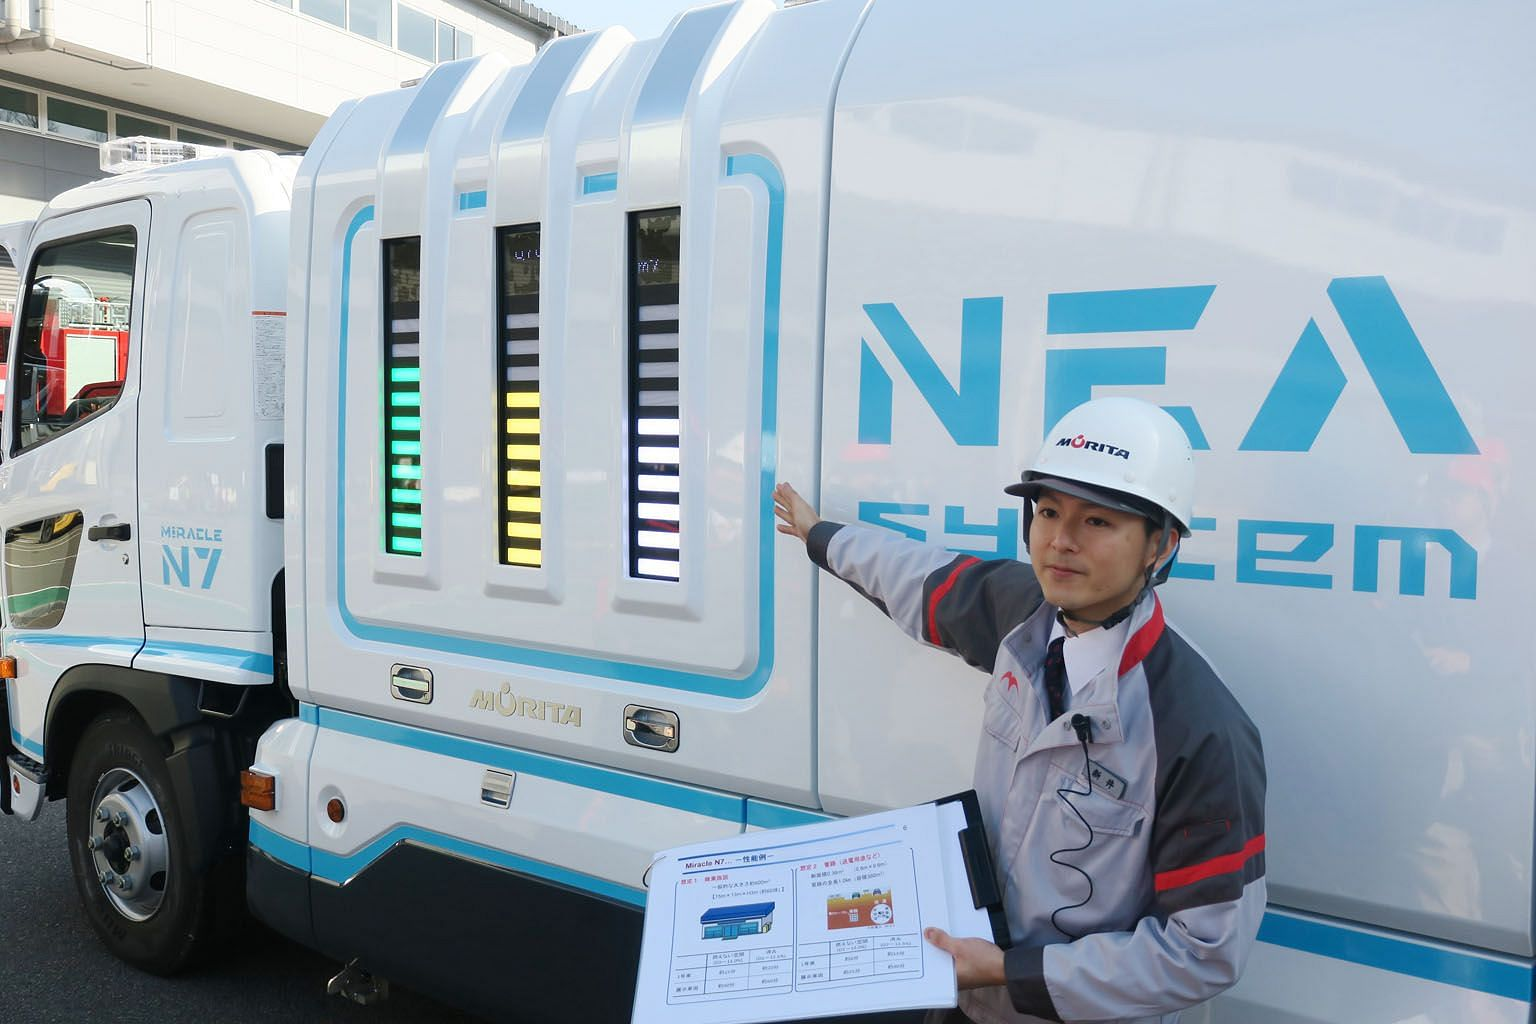 Morita engineer Toshimitsu Arai points to the company's new fire truck that uses a new Nitrogen Enriched Air system to fight fires.